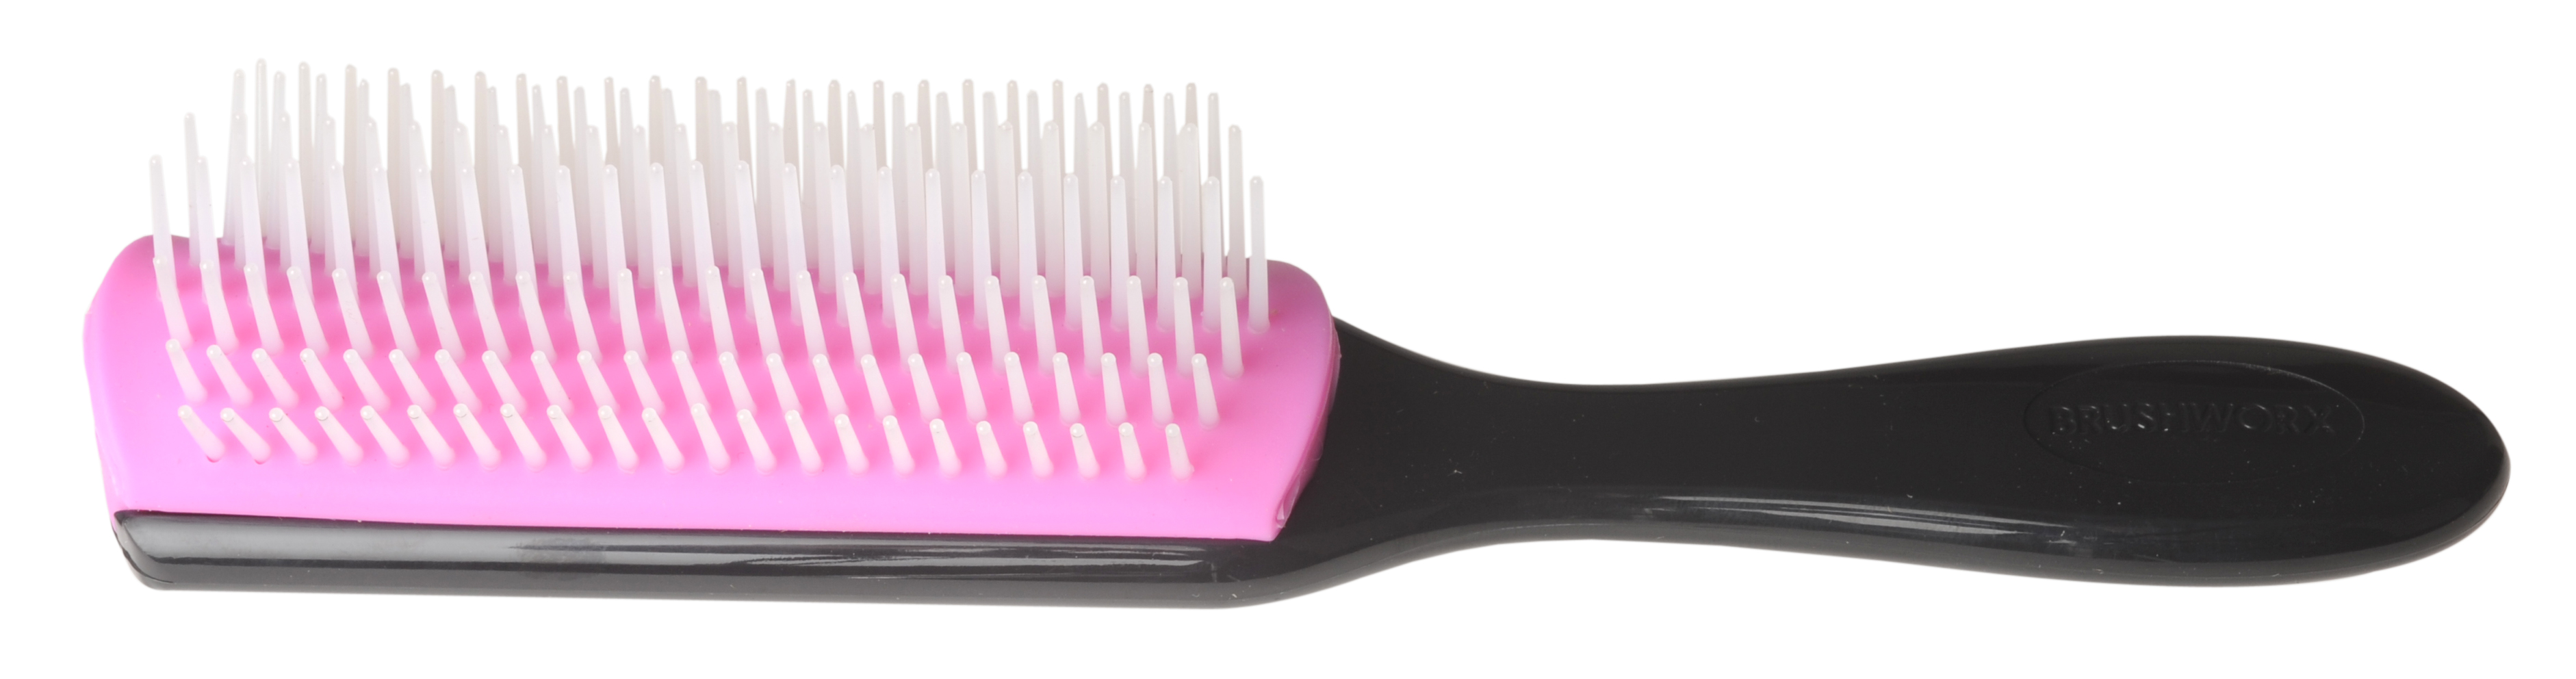 Silicone Base Hair Brushes From I Glamour Tech Glossary